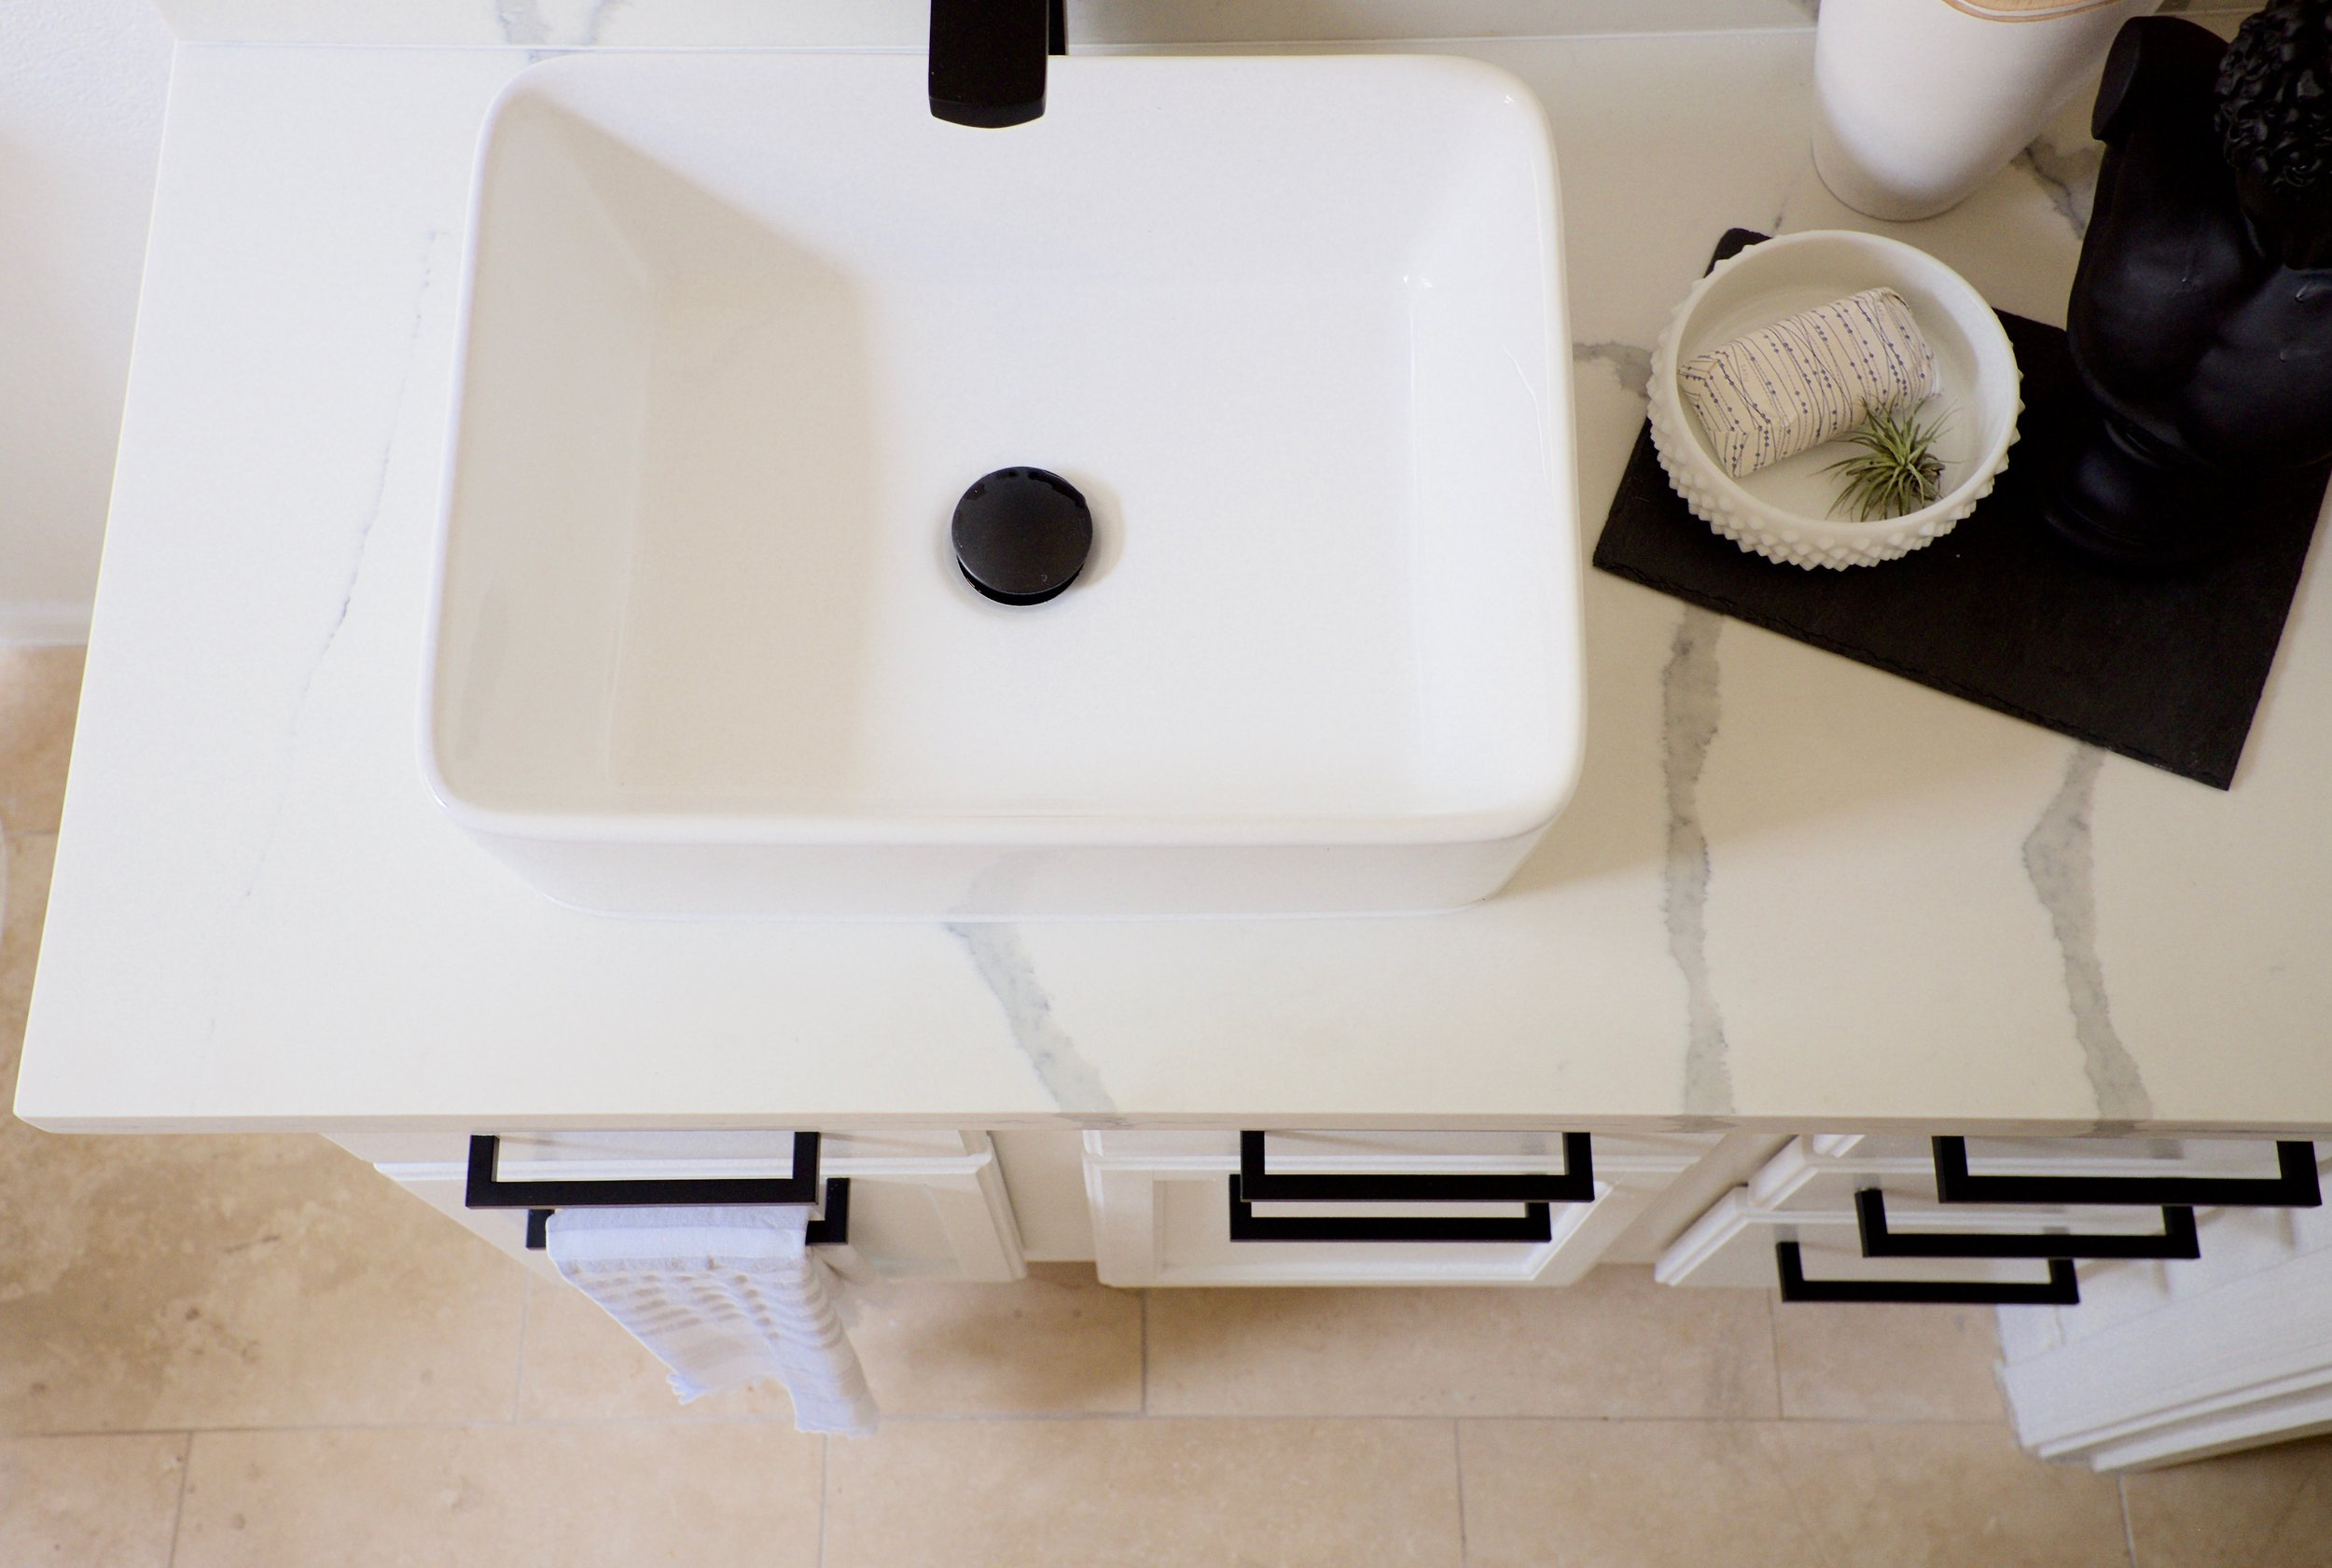 Vessel sink and quartz counter with black faucet in bathroom renovation